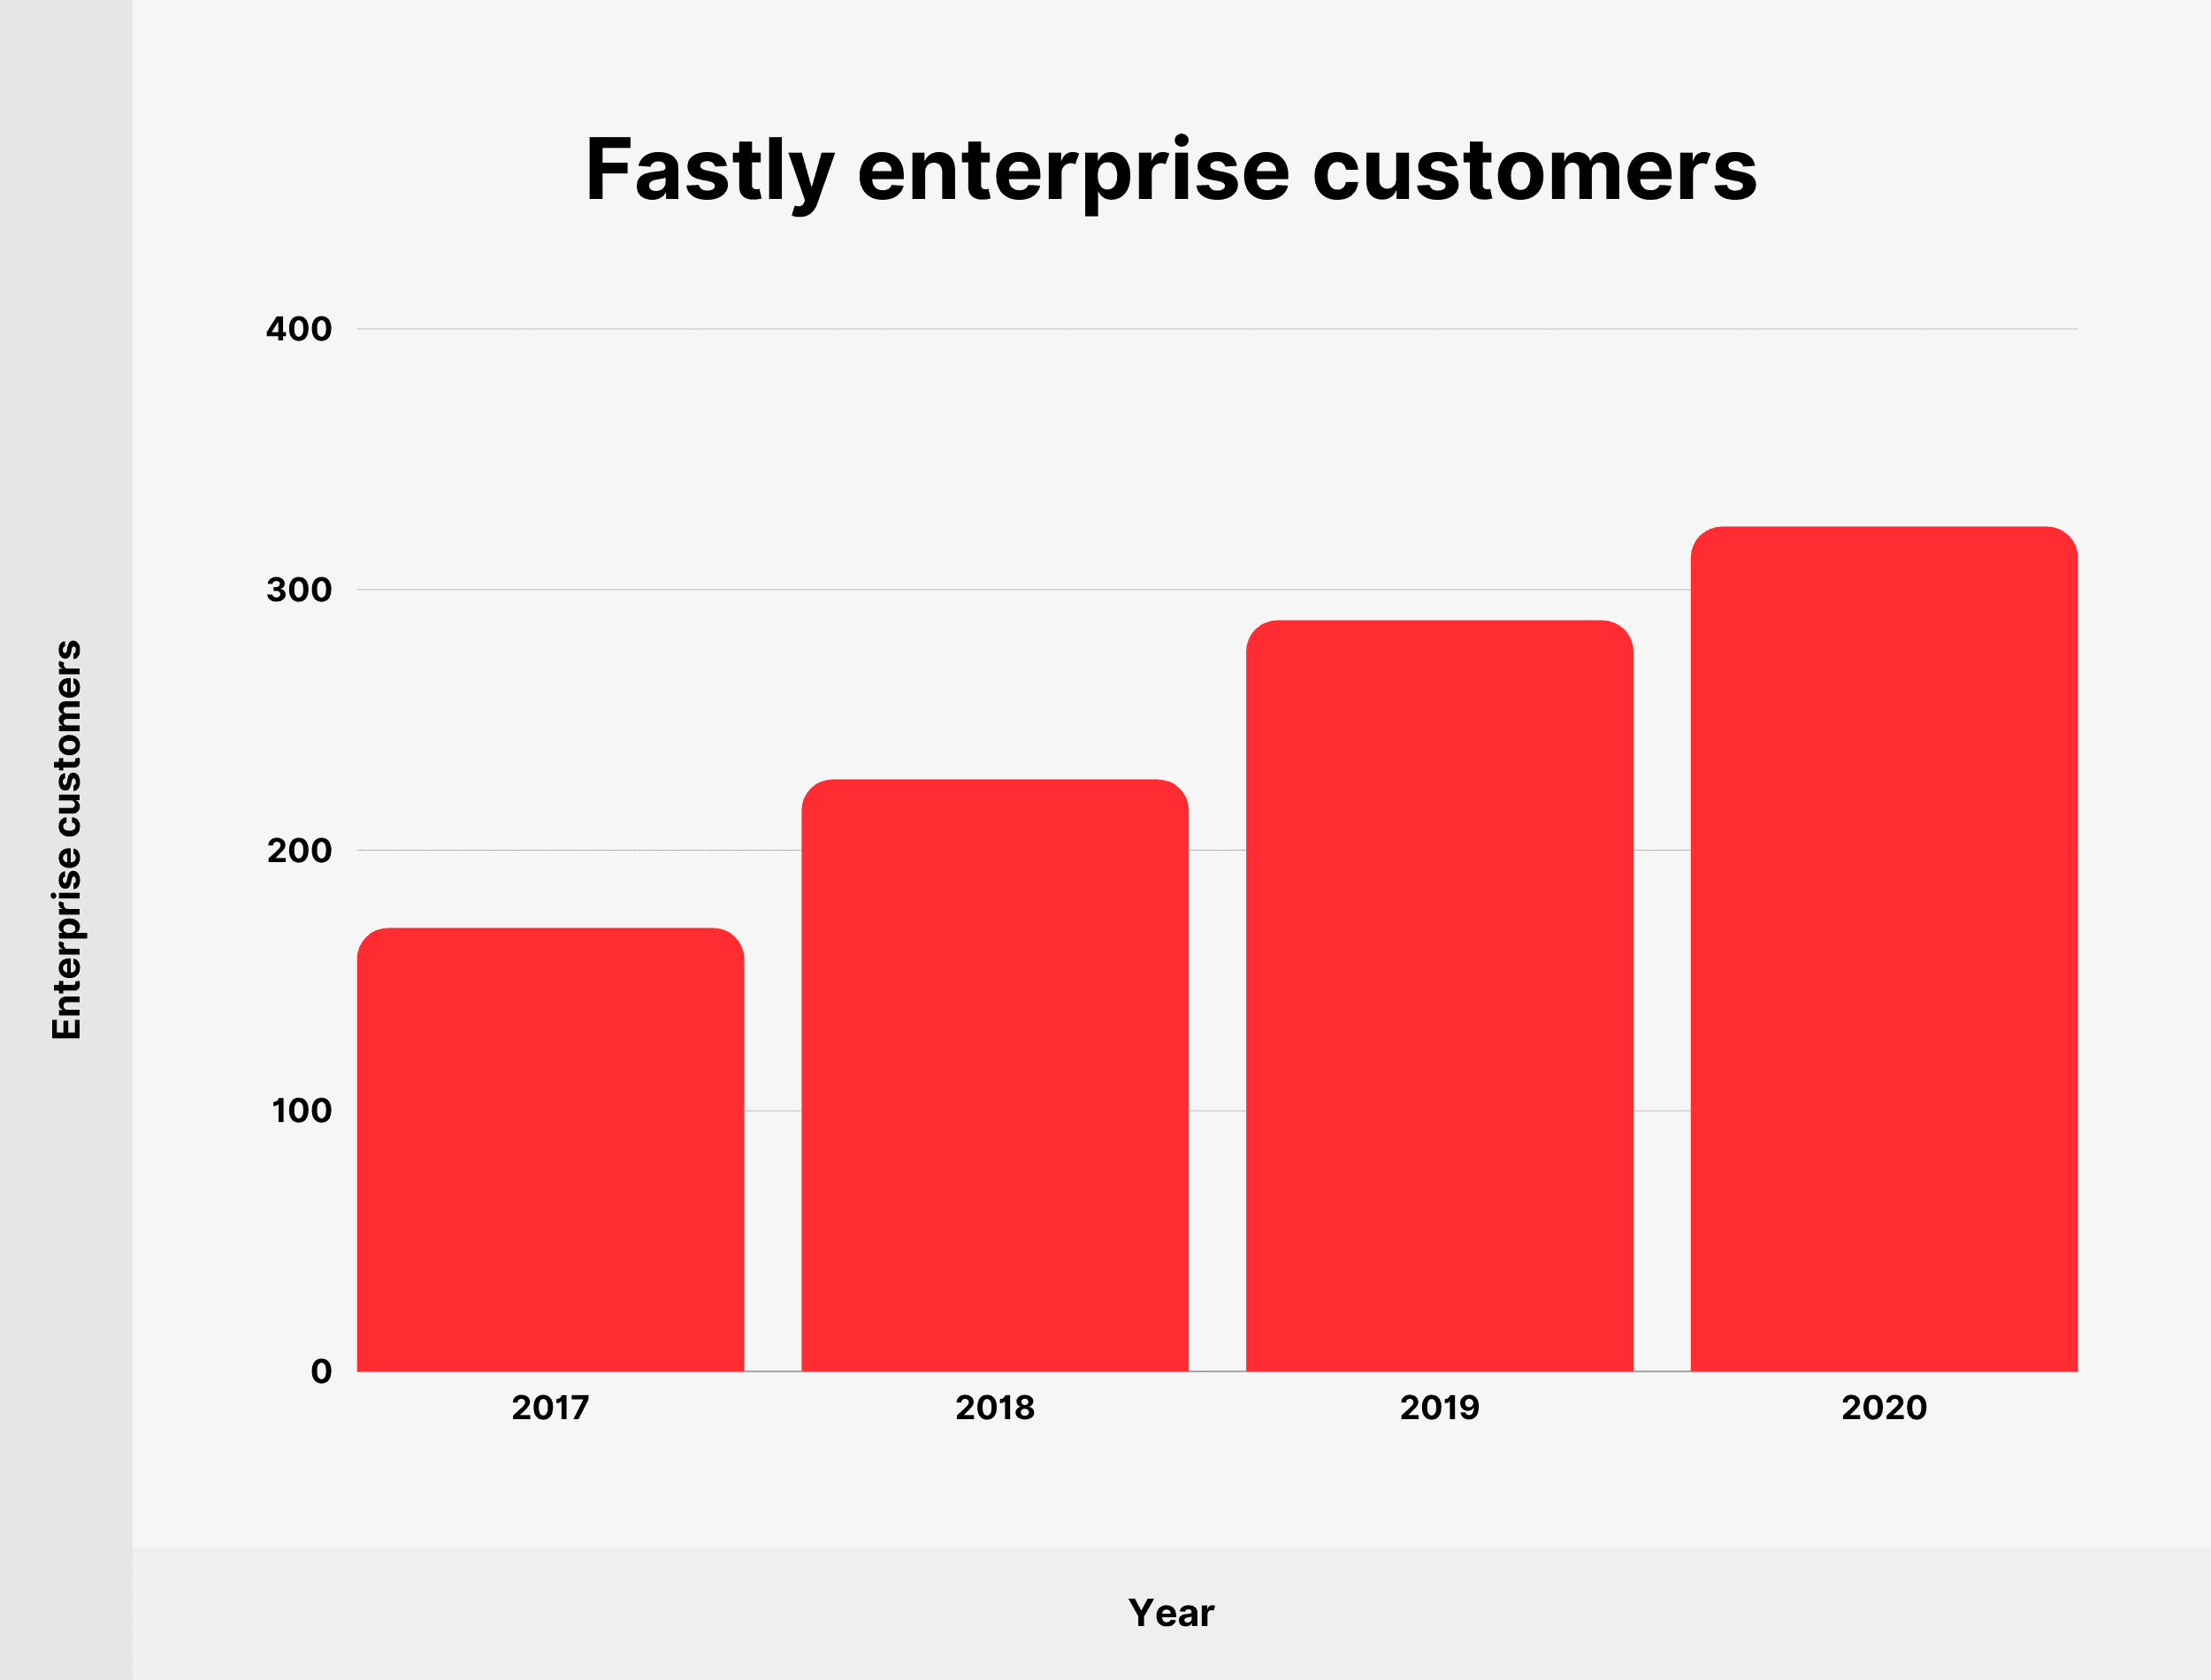 Fastly enterprise customers